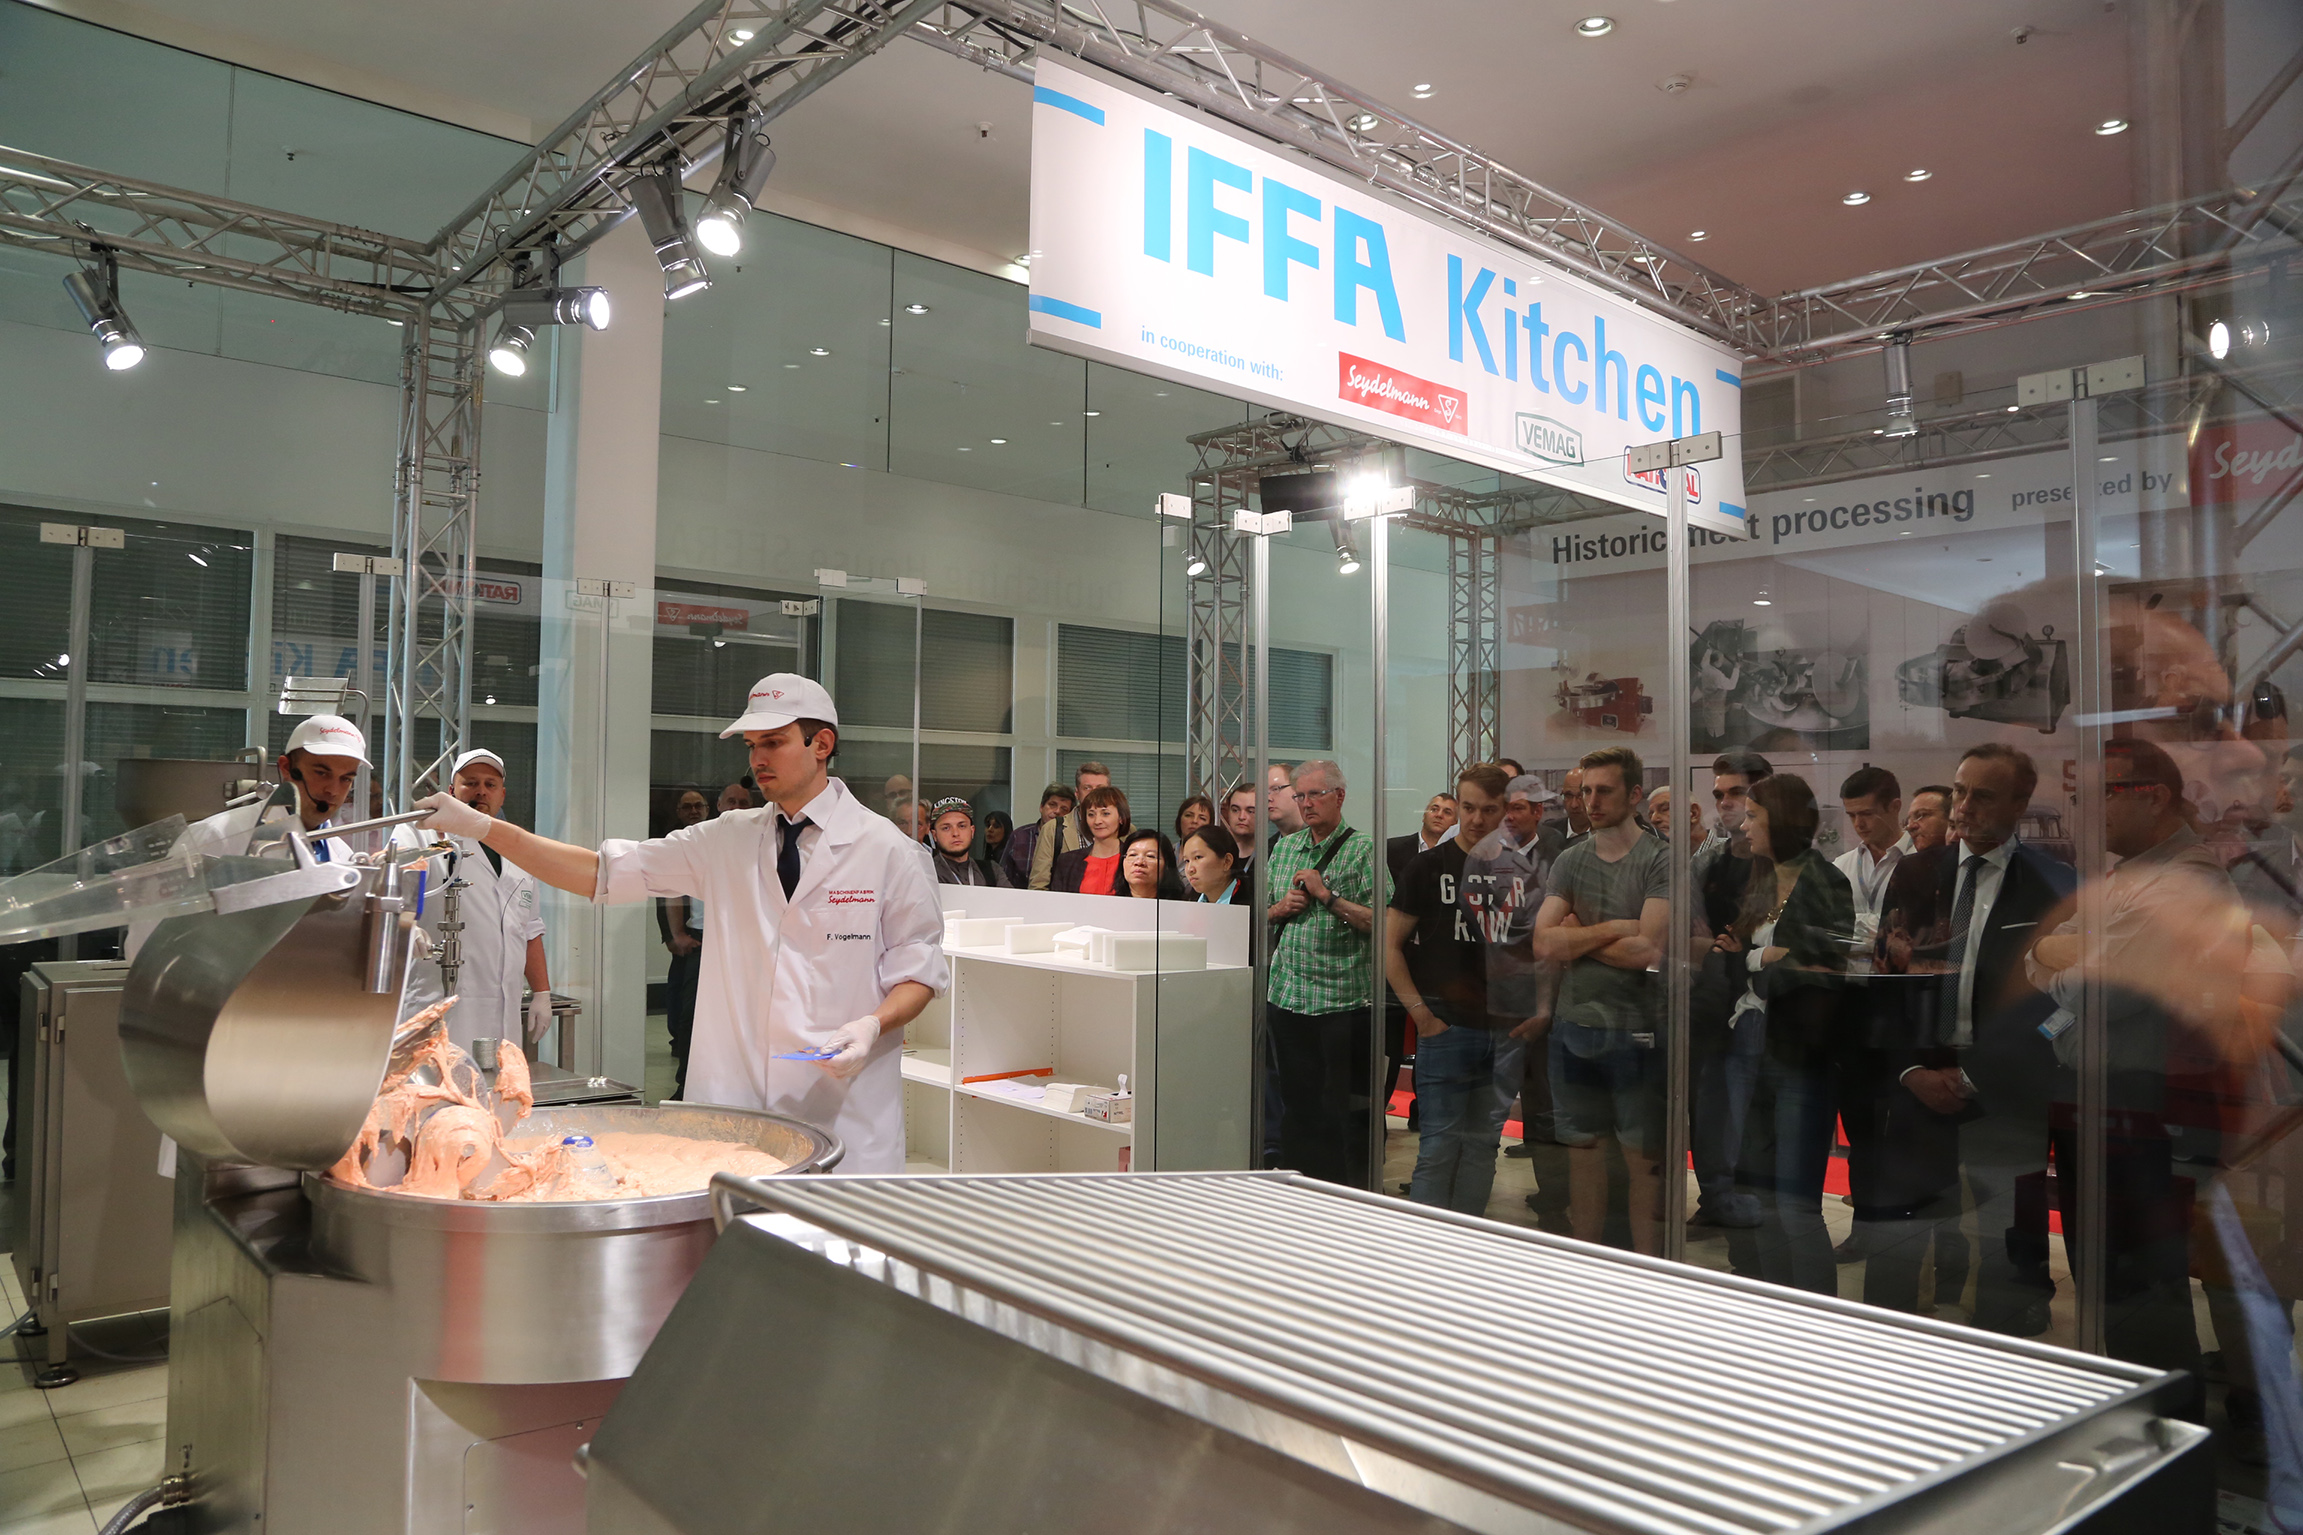 IFFA Kitchen